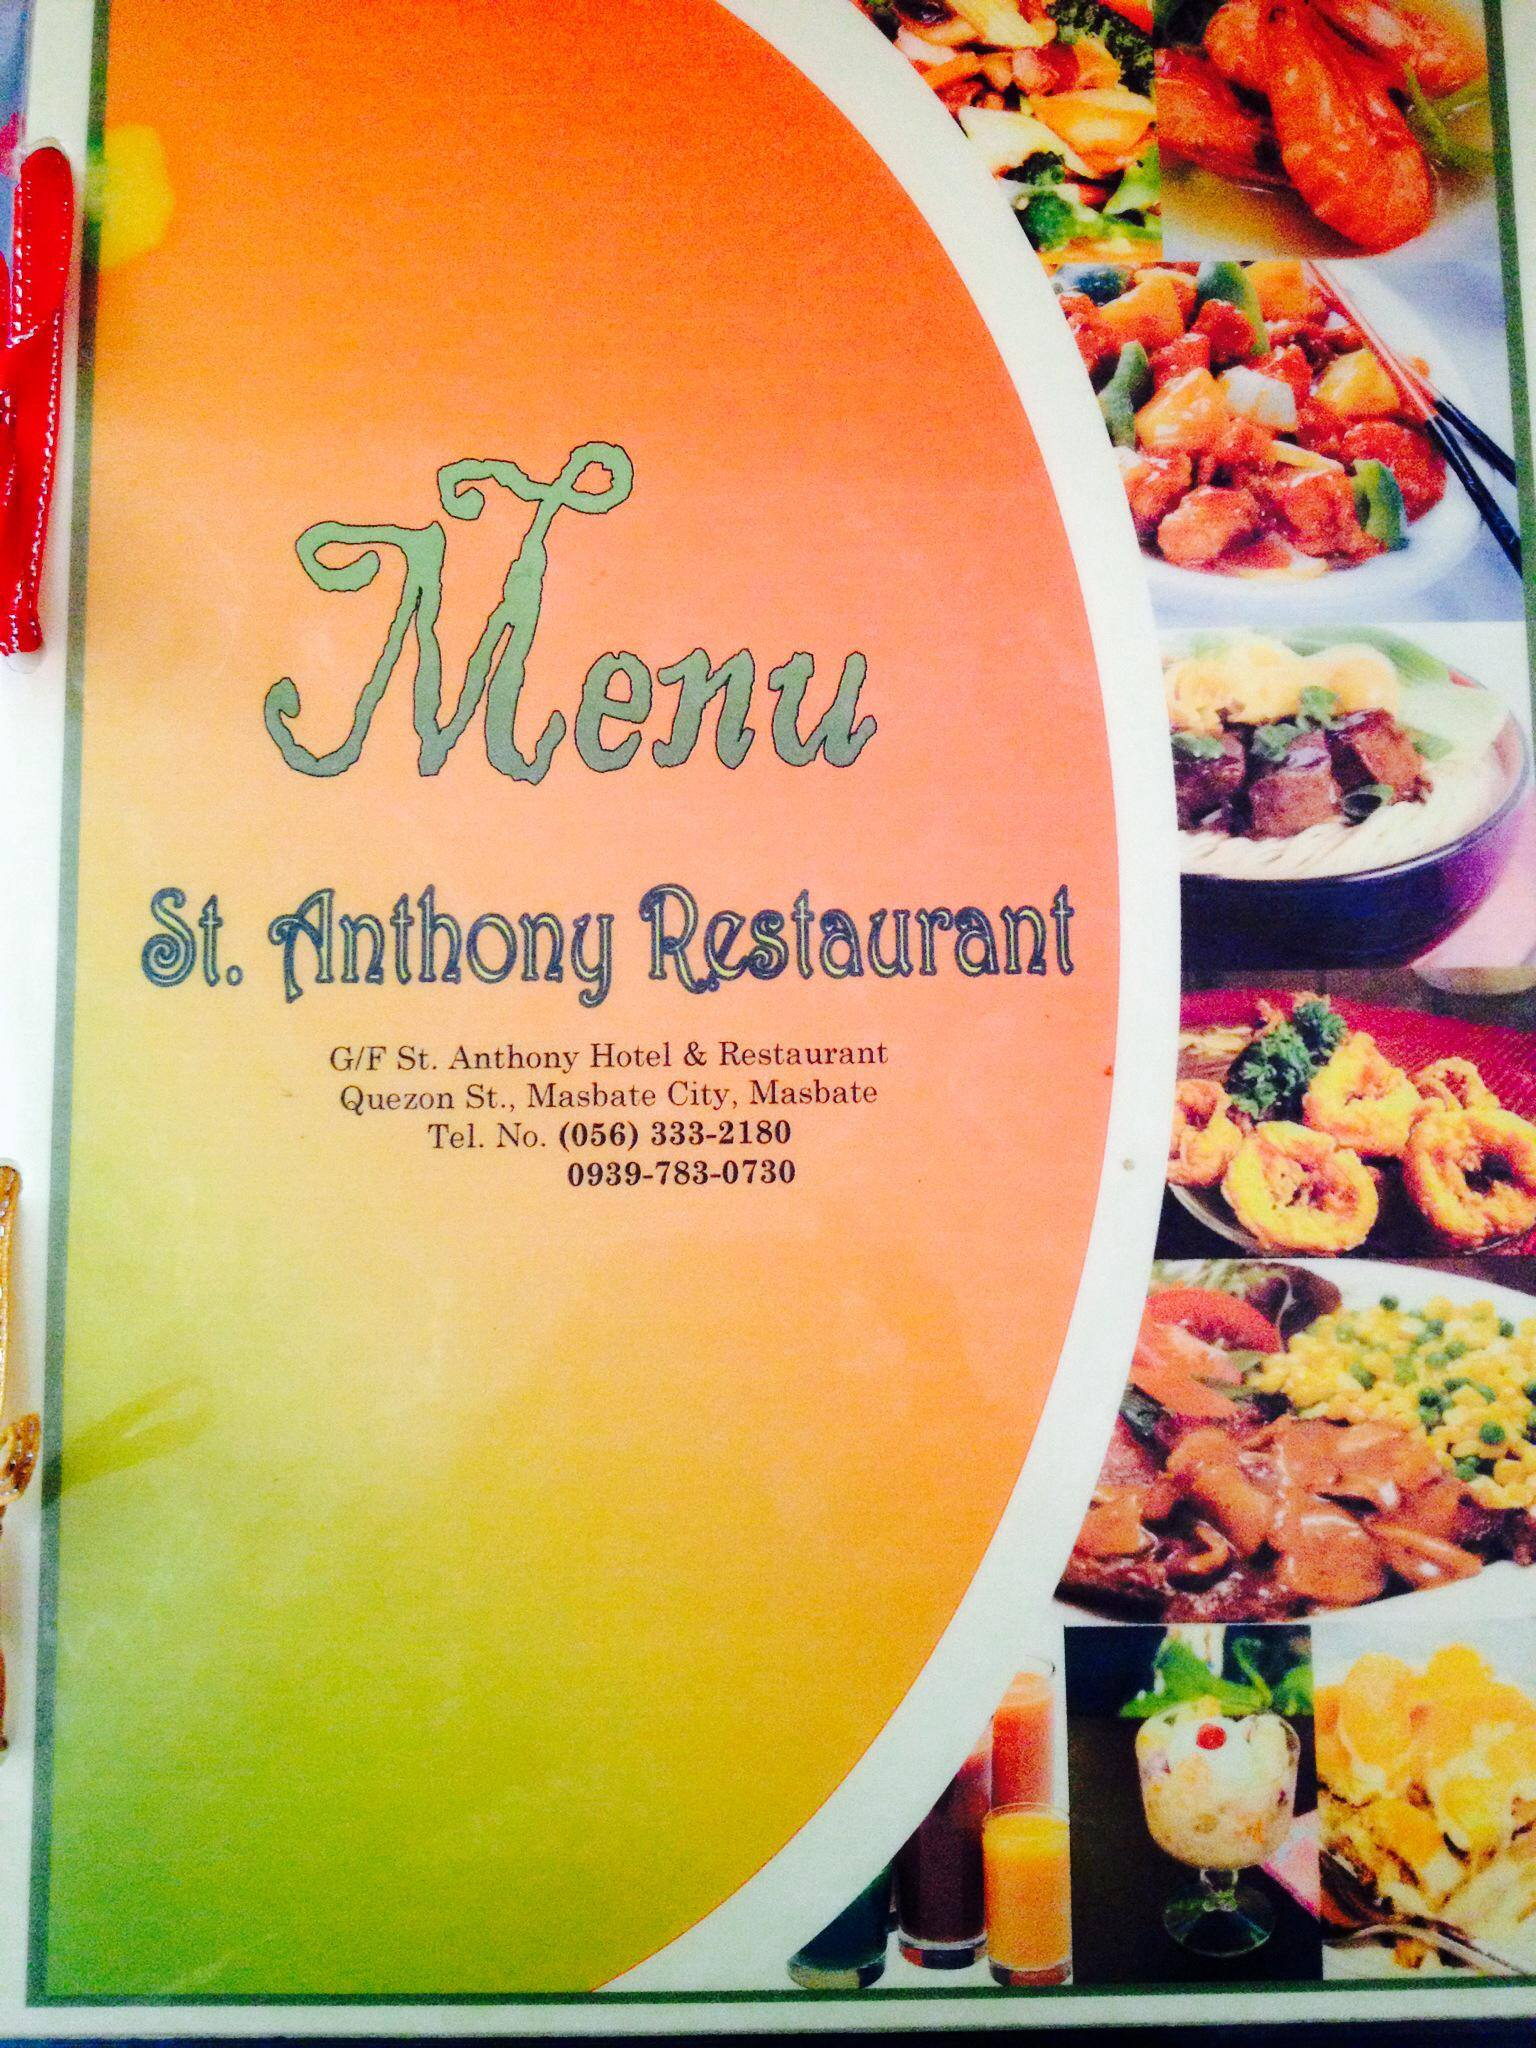 St. Anthony Restaurant